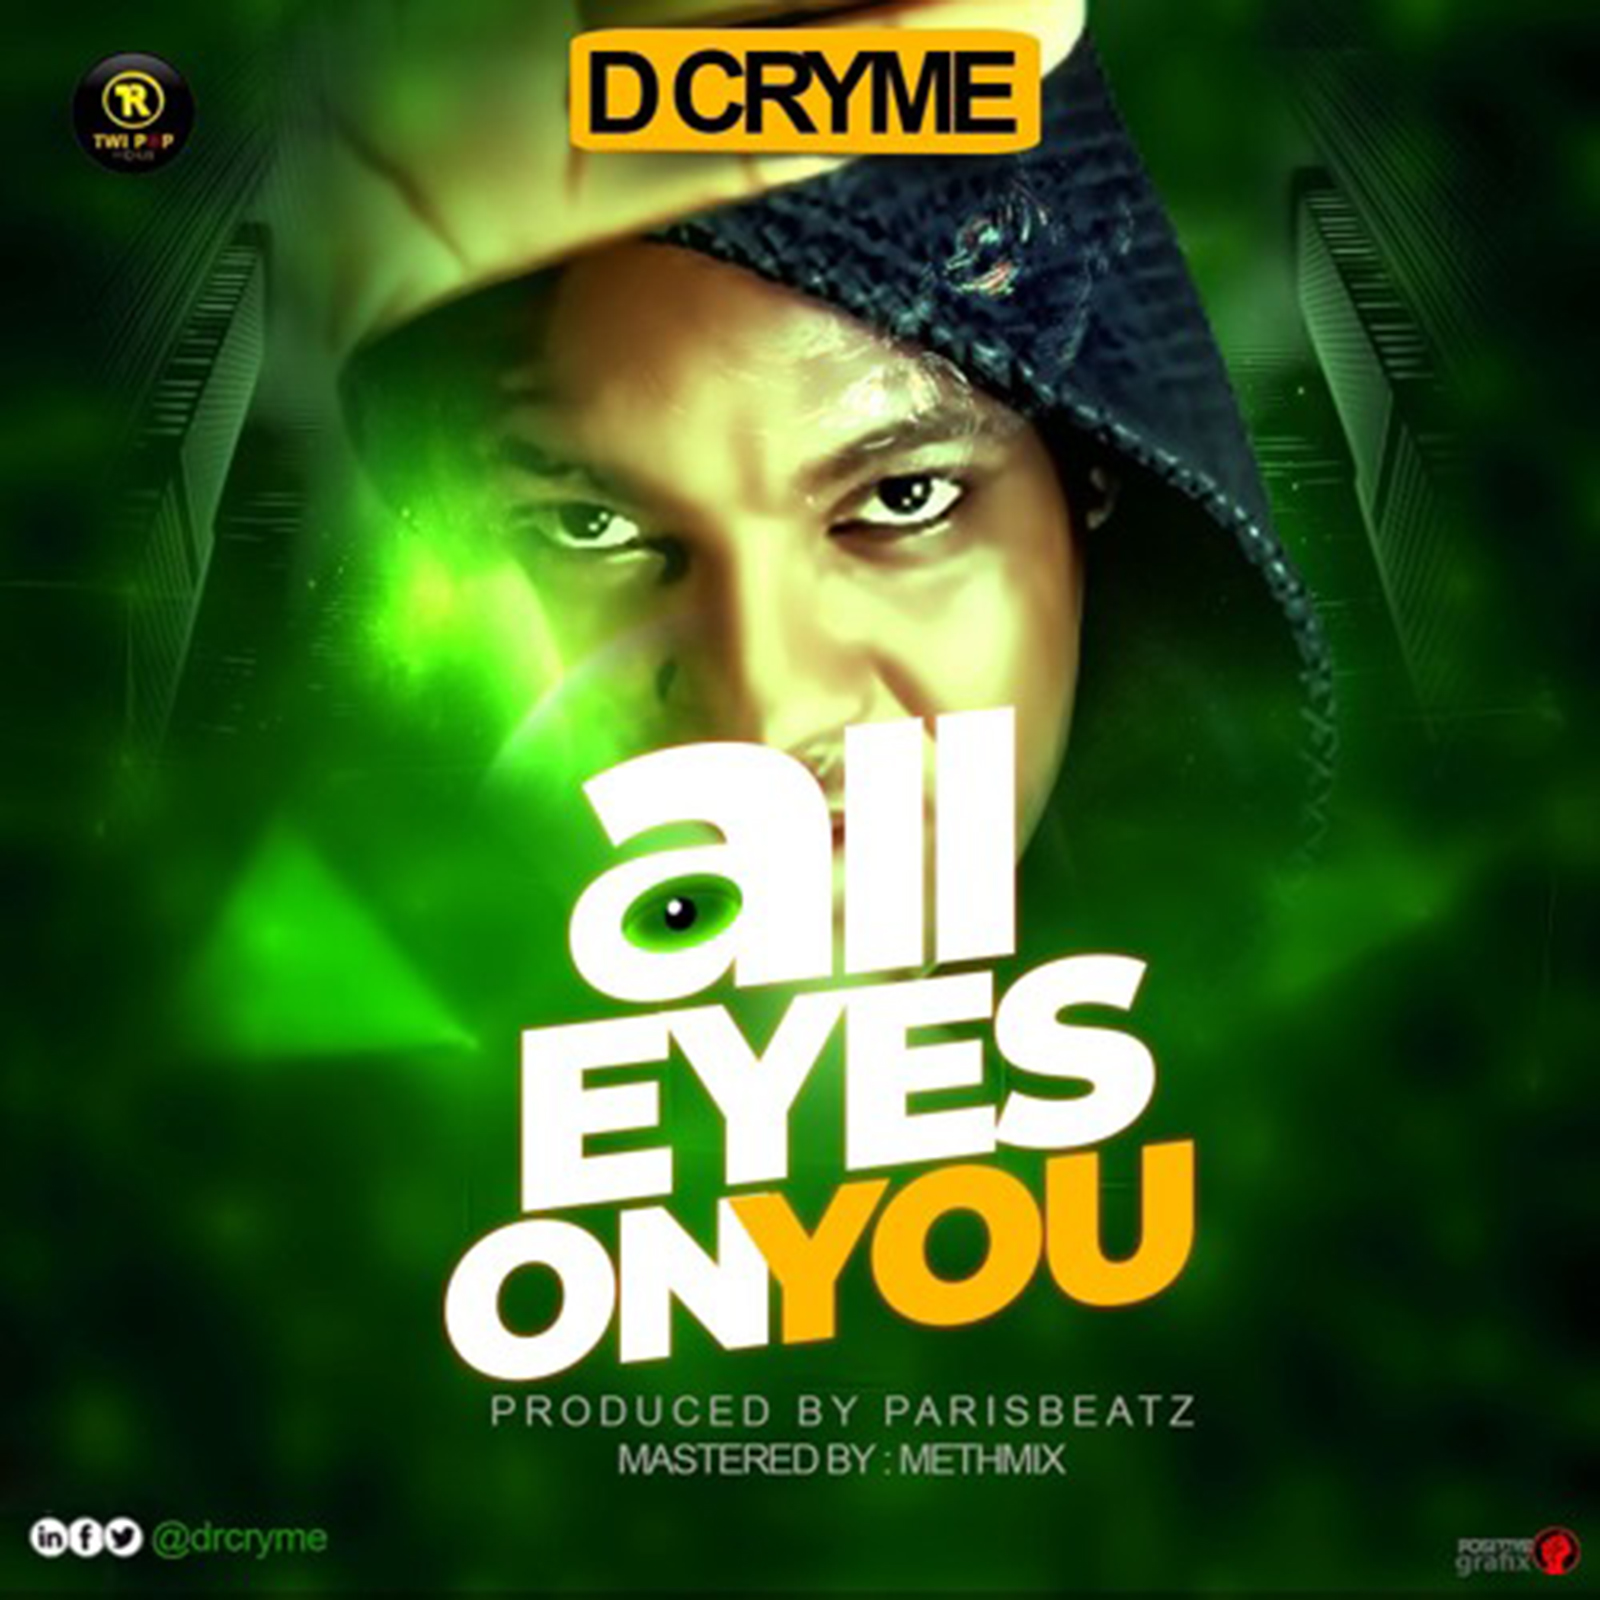 All Eyes On You by D Cryme